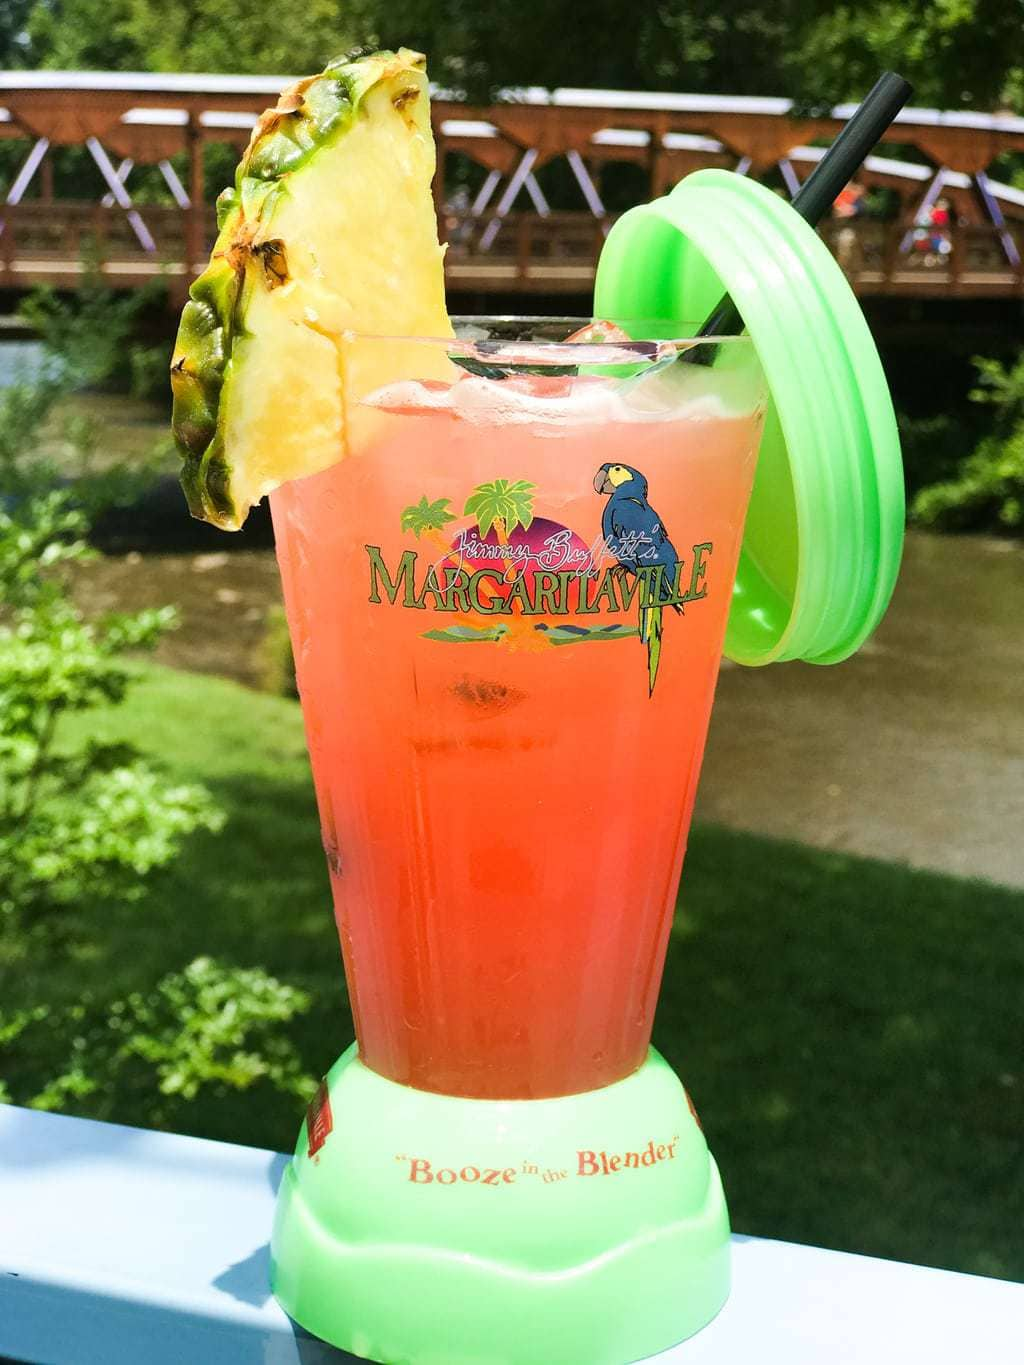 Booze in the Blender at Margaritaville restaurant